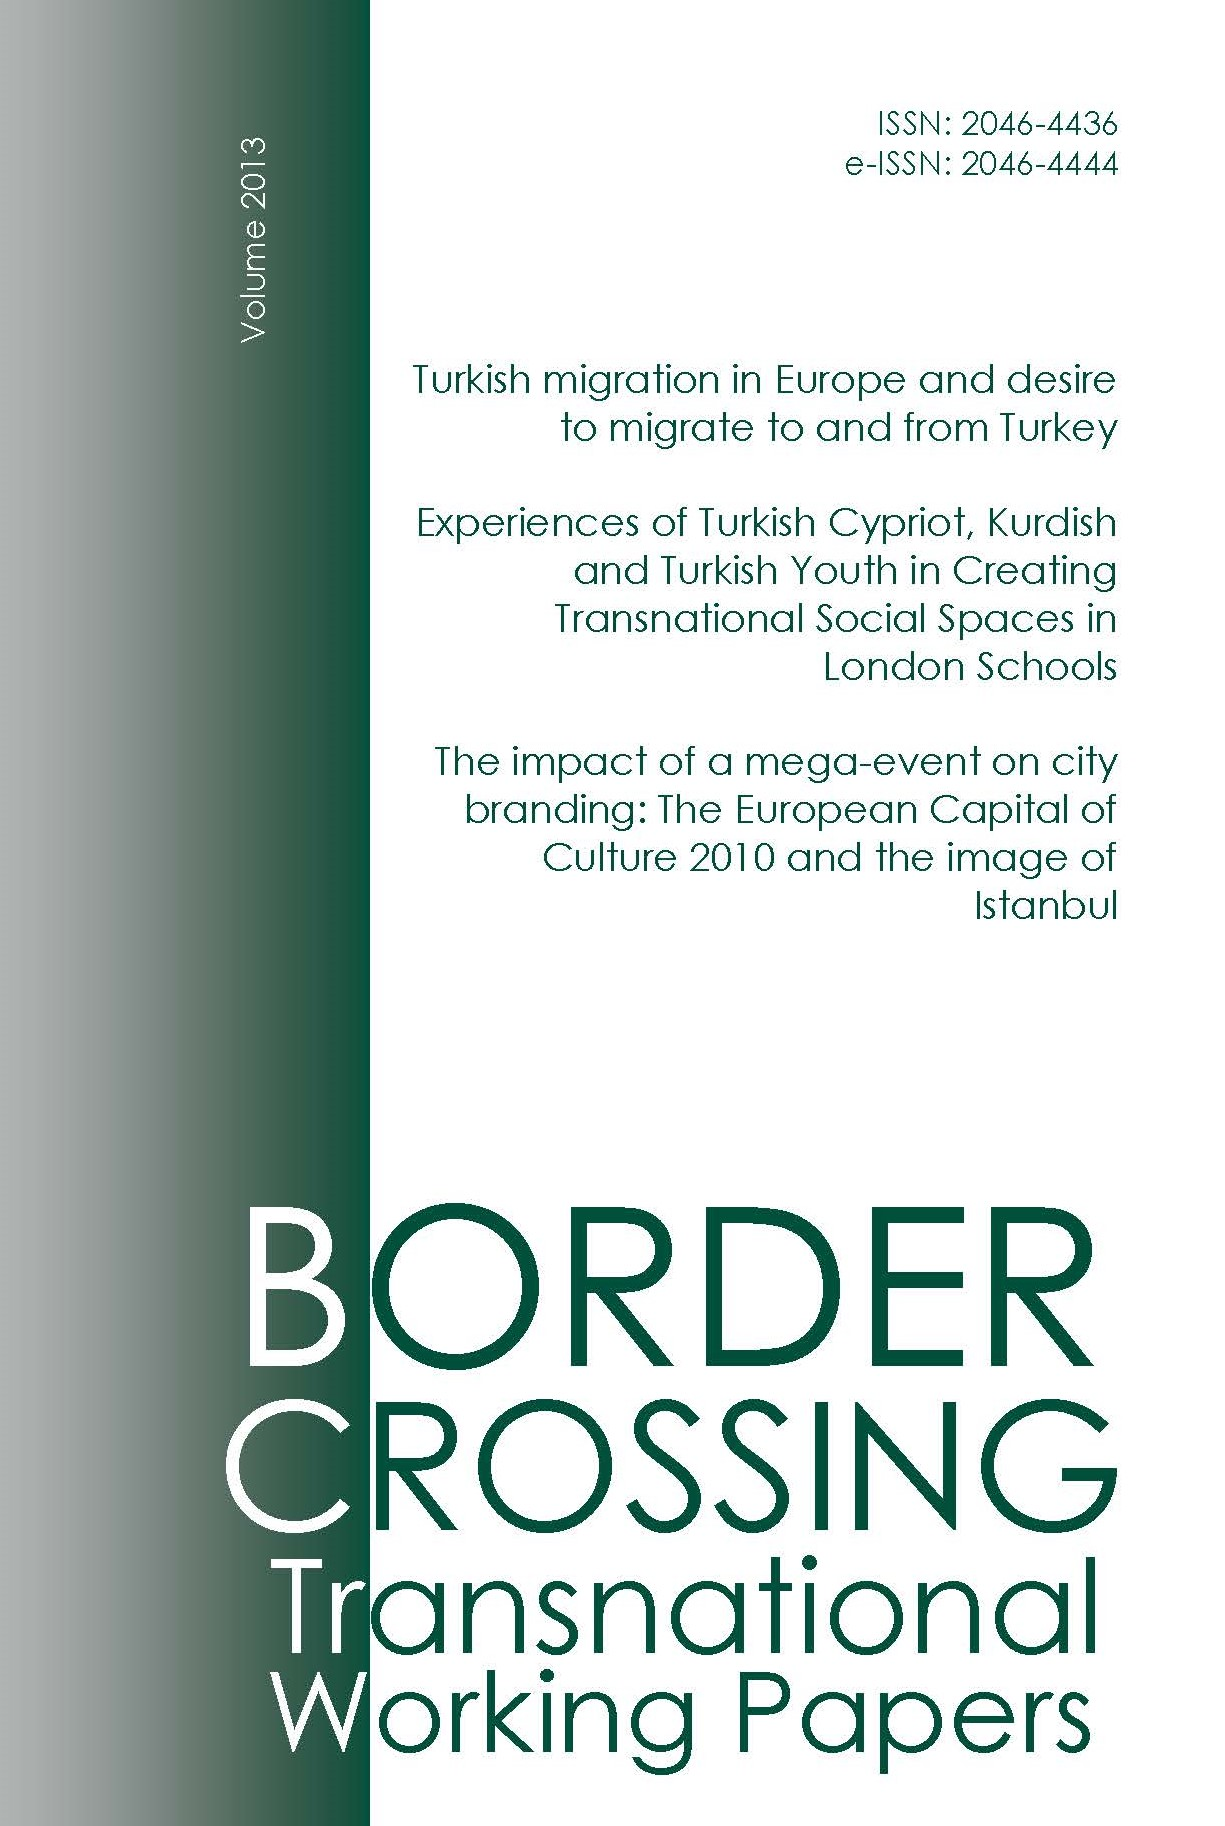 Border Crossing Transnational Working Papers 2013